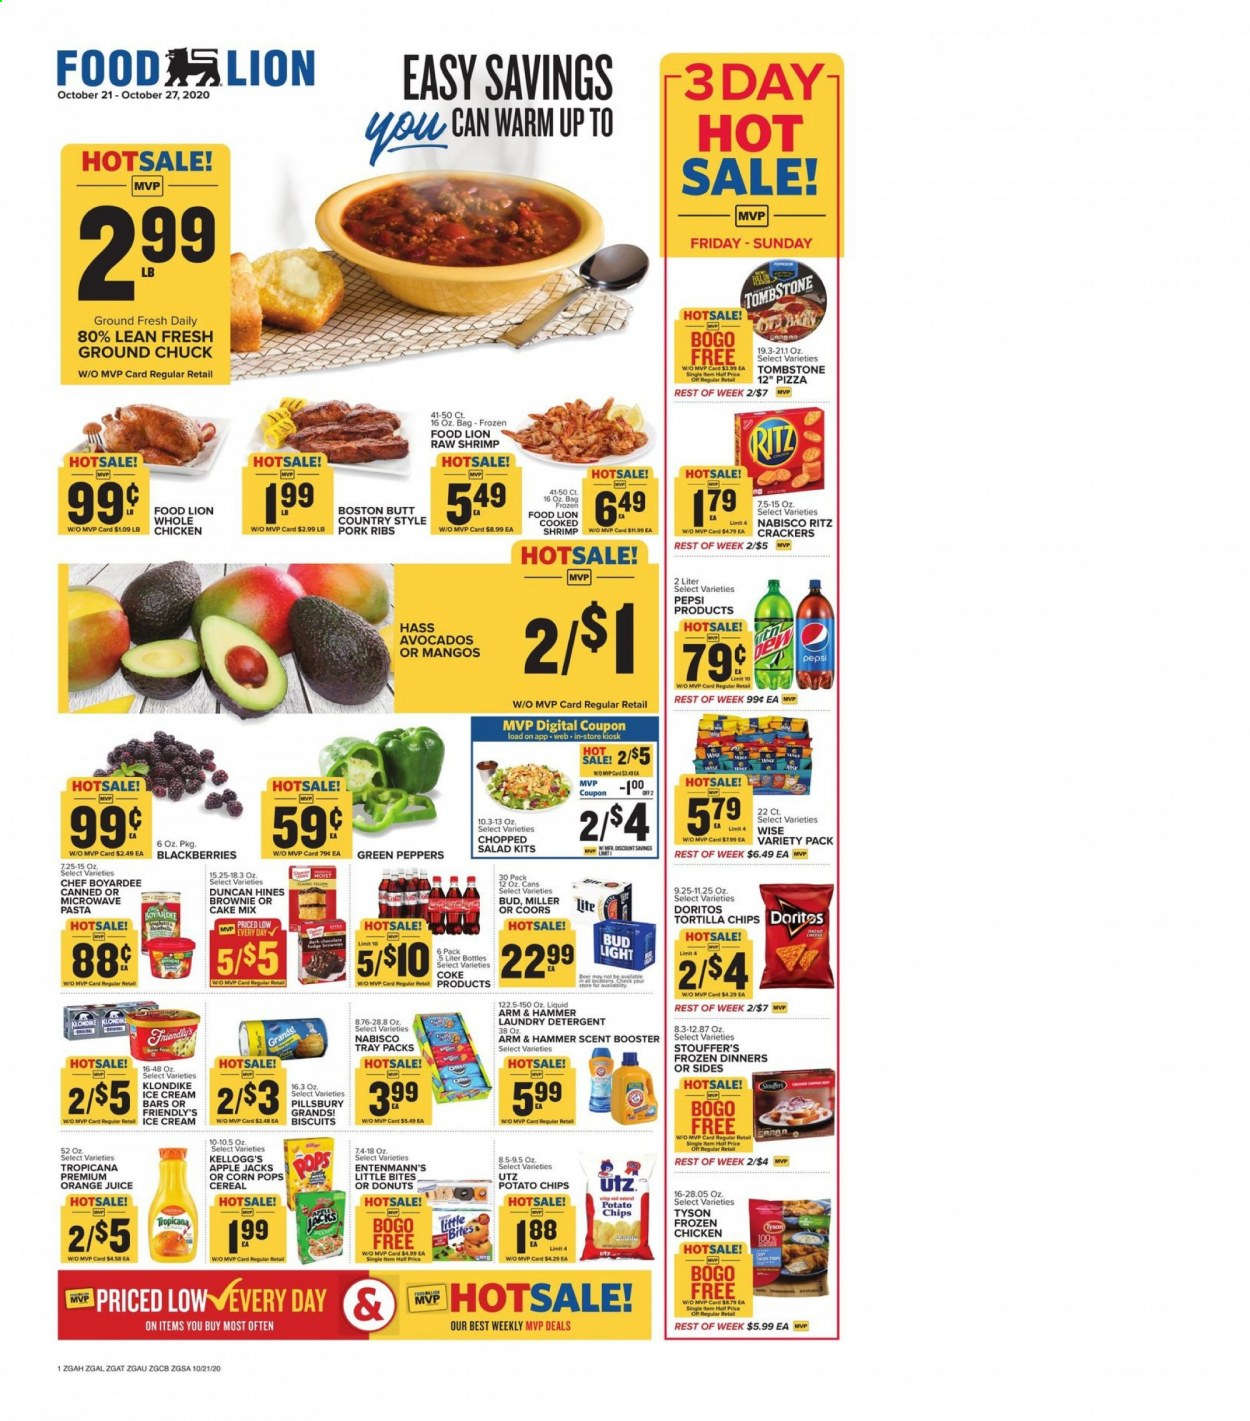 Food Lion Flyer - 10.21.2020 - 10.27.2020 - Sales products - apples, arm & hammer, avocado, bag, beer, biscuits, bittersweet chocolate, blackberries, cake mix, cereals, coca-cola, corn, crackers, detergent, doritos, frozen, fudge, ground chuck, mango, microwave, shrimp, tortilla chips, tray, whole chicken, ice cream, ice cream bars, pizza, pork meat, pork ribs, potato chips, chicken, pepsi, orange juice, orange, chips, chocolate, juice, cake, donuts, hammer, cereal, pasta, bud light, ritz, salad, ribs, bites, miller, coors, liquid, peppers, brownie, laundry detergent, apple, shrimps, donut. Page 1.